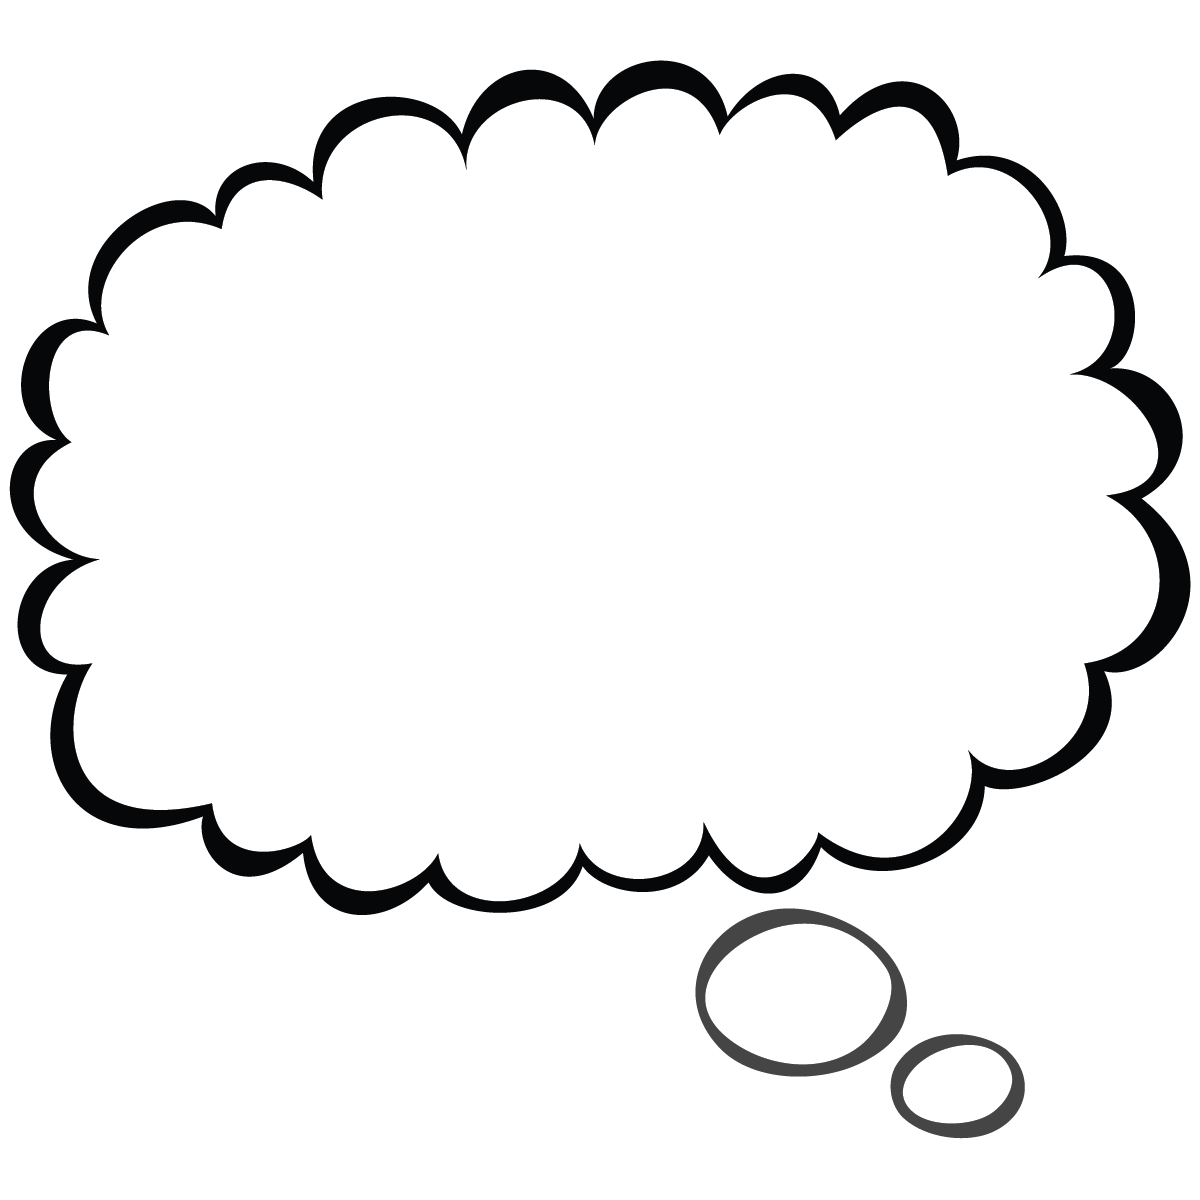 Thought bubble sketch png. Scal svg speech pinterest